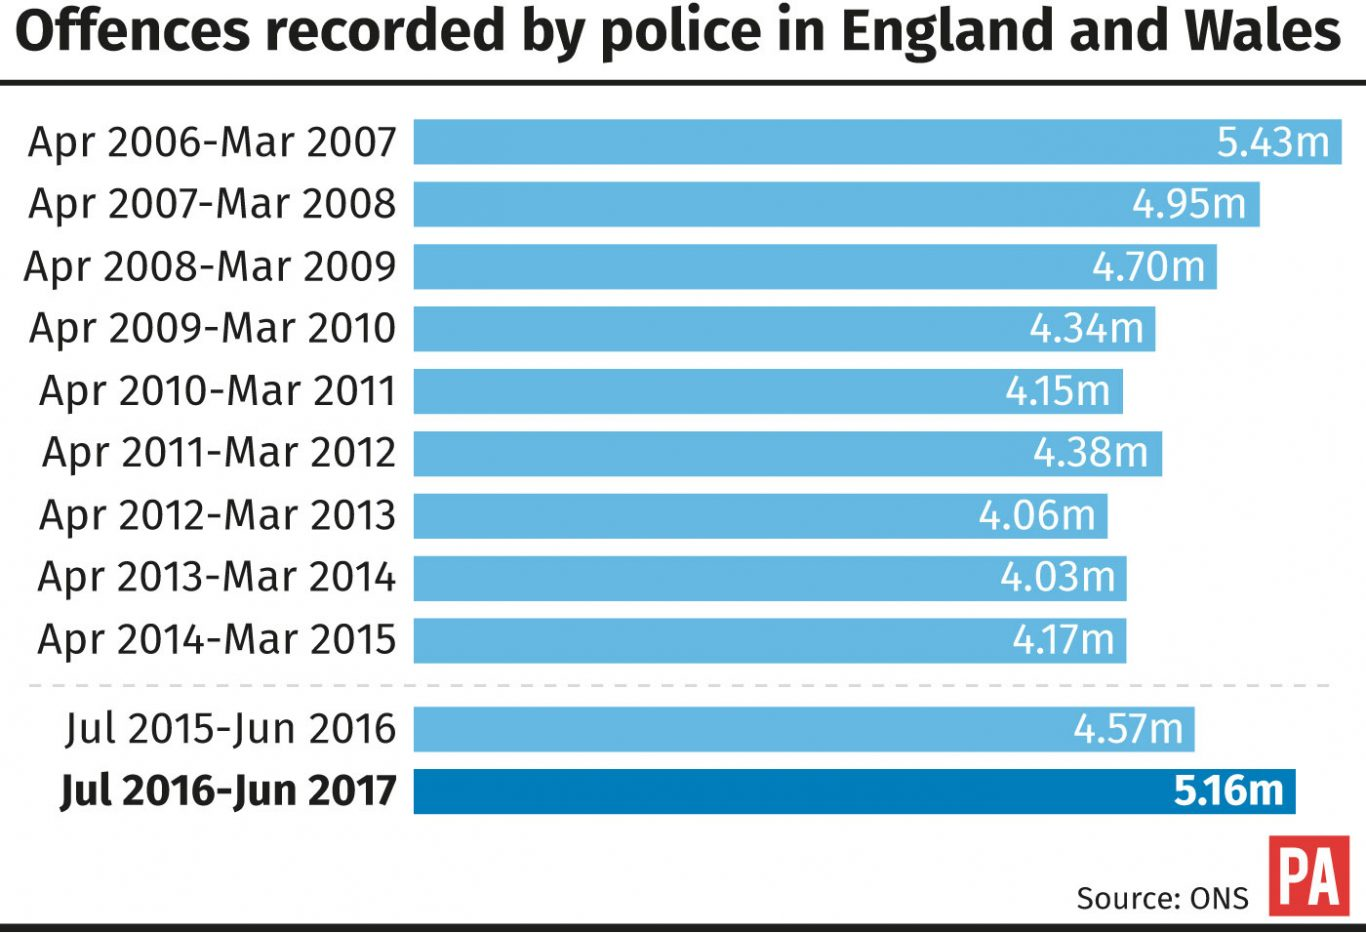 Offences recorded by police in England and Wales